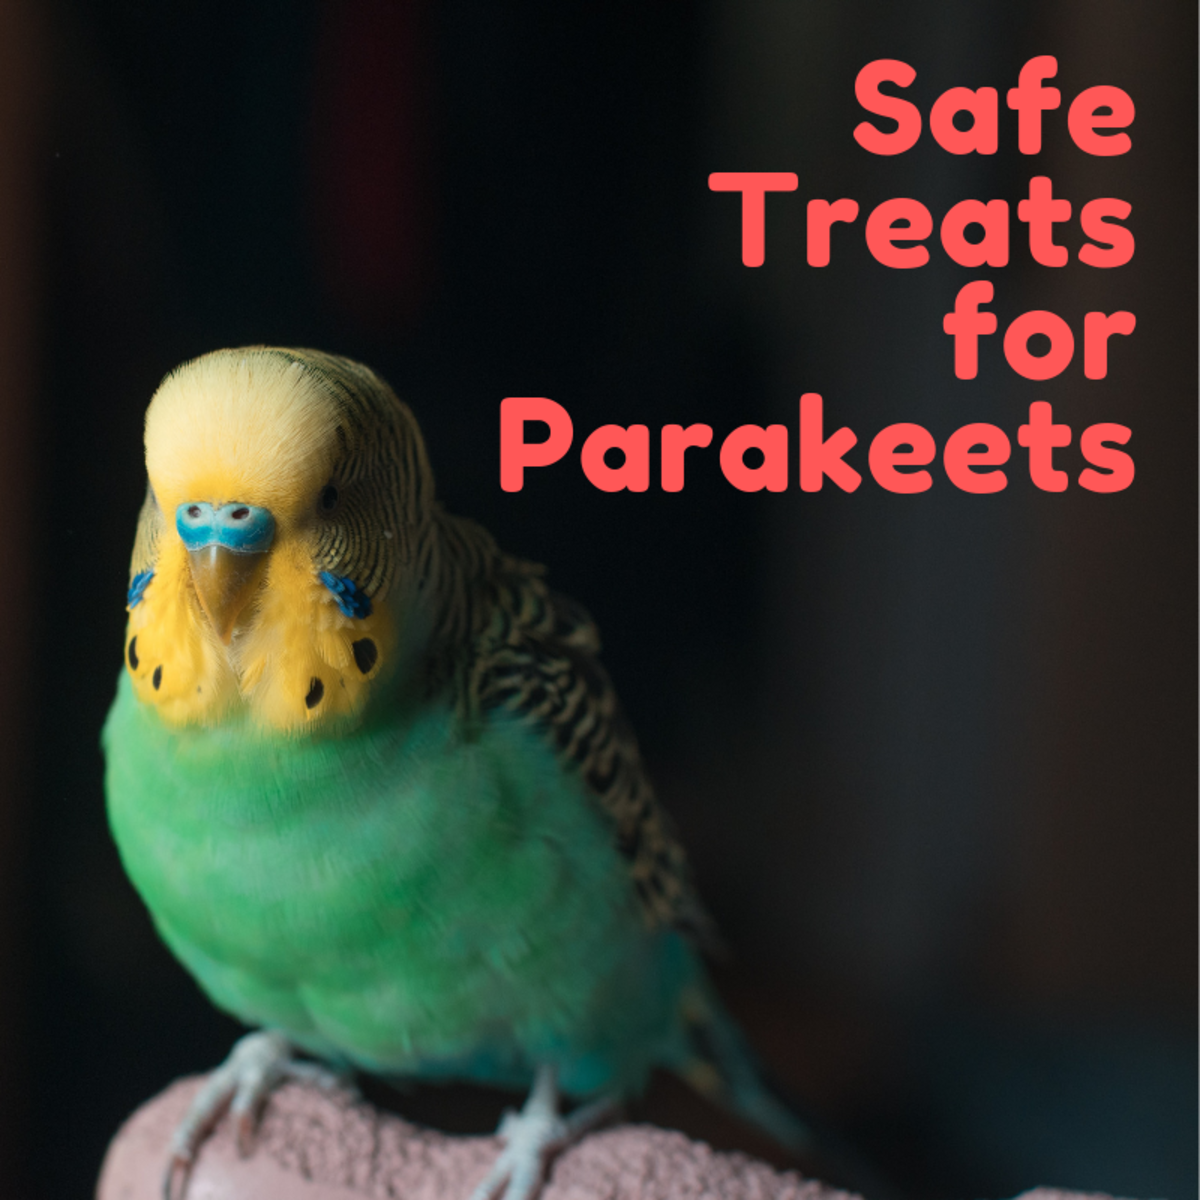 Which Foods Are Safe for Parakeets to Eat?